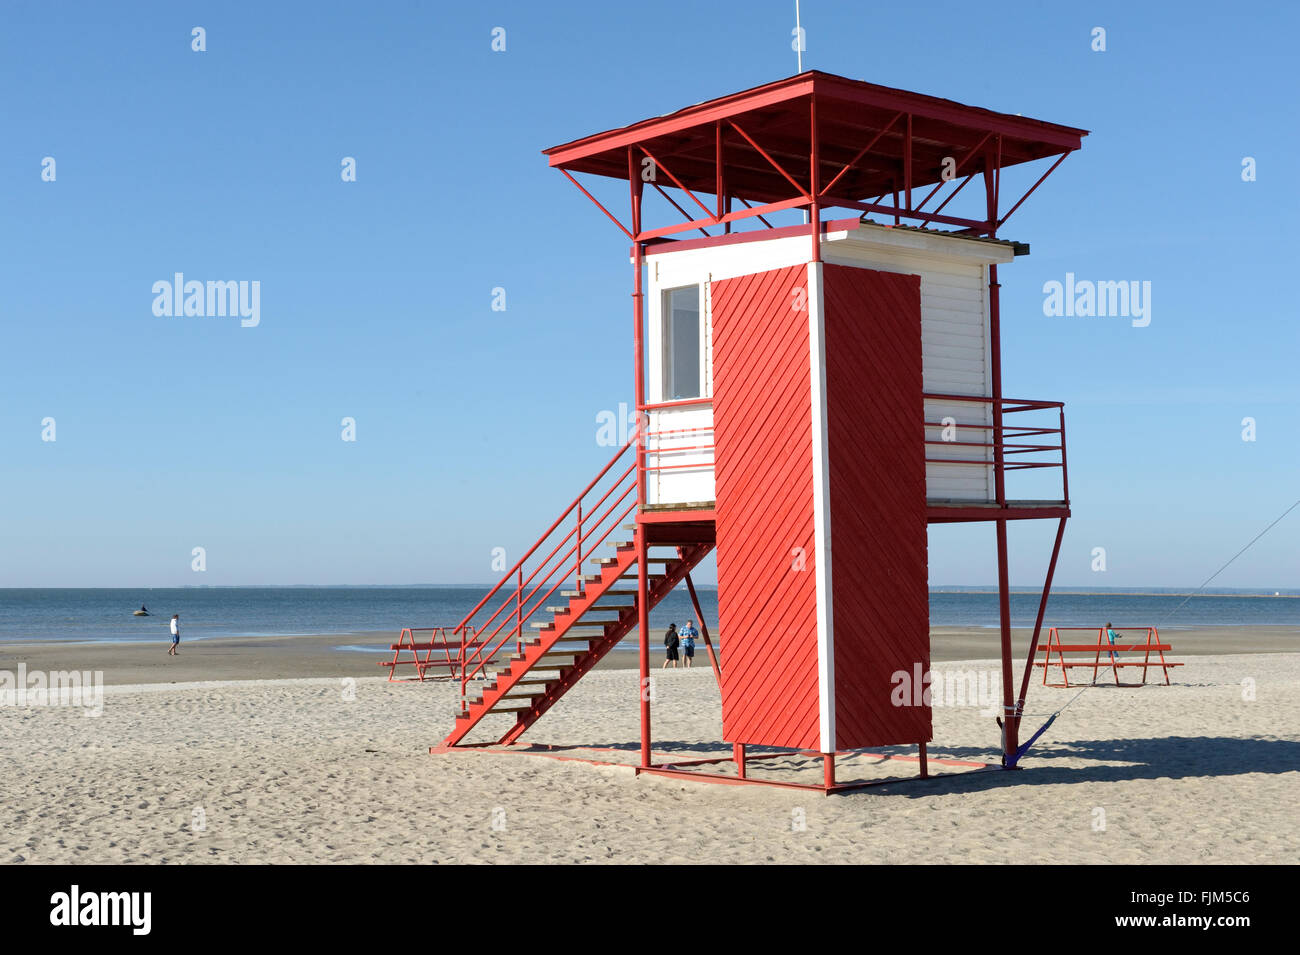 geography / travel, Estonia, Pärnu, beaches, outlook for lifeguards, exterior view, Additional-Rights-Clearance - Stock Image